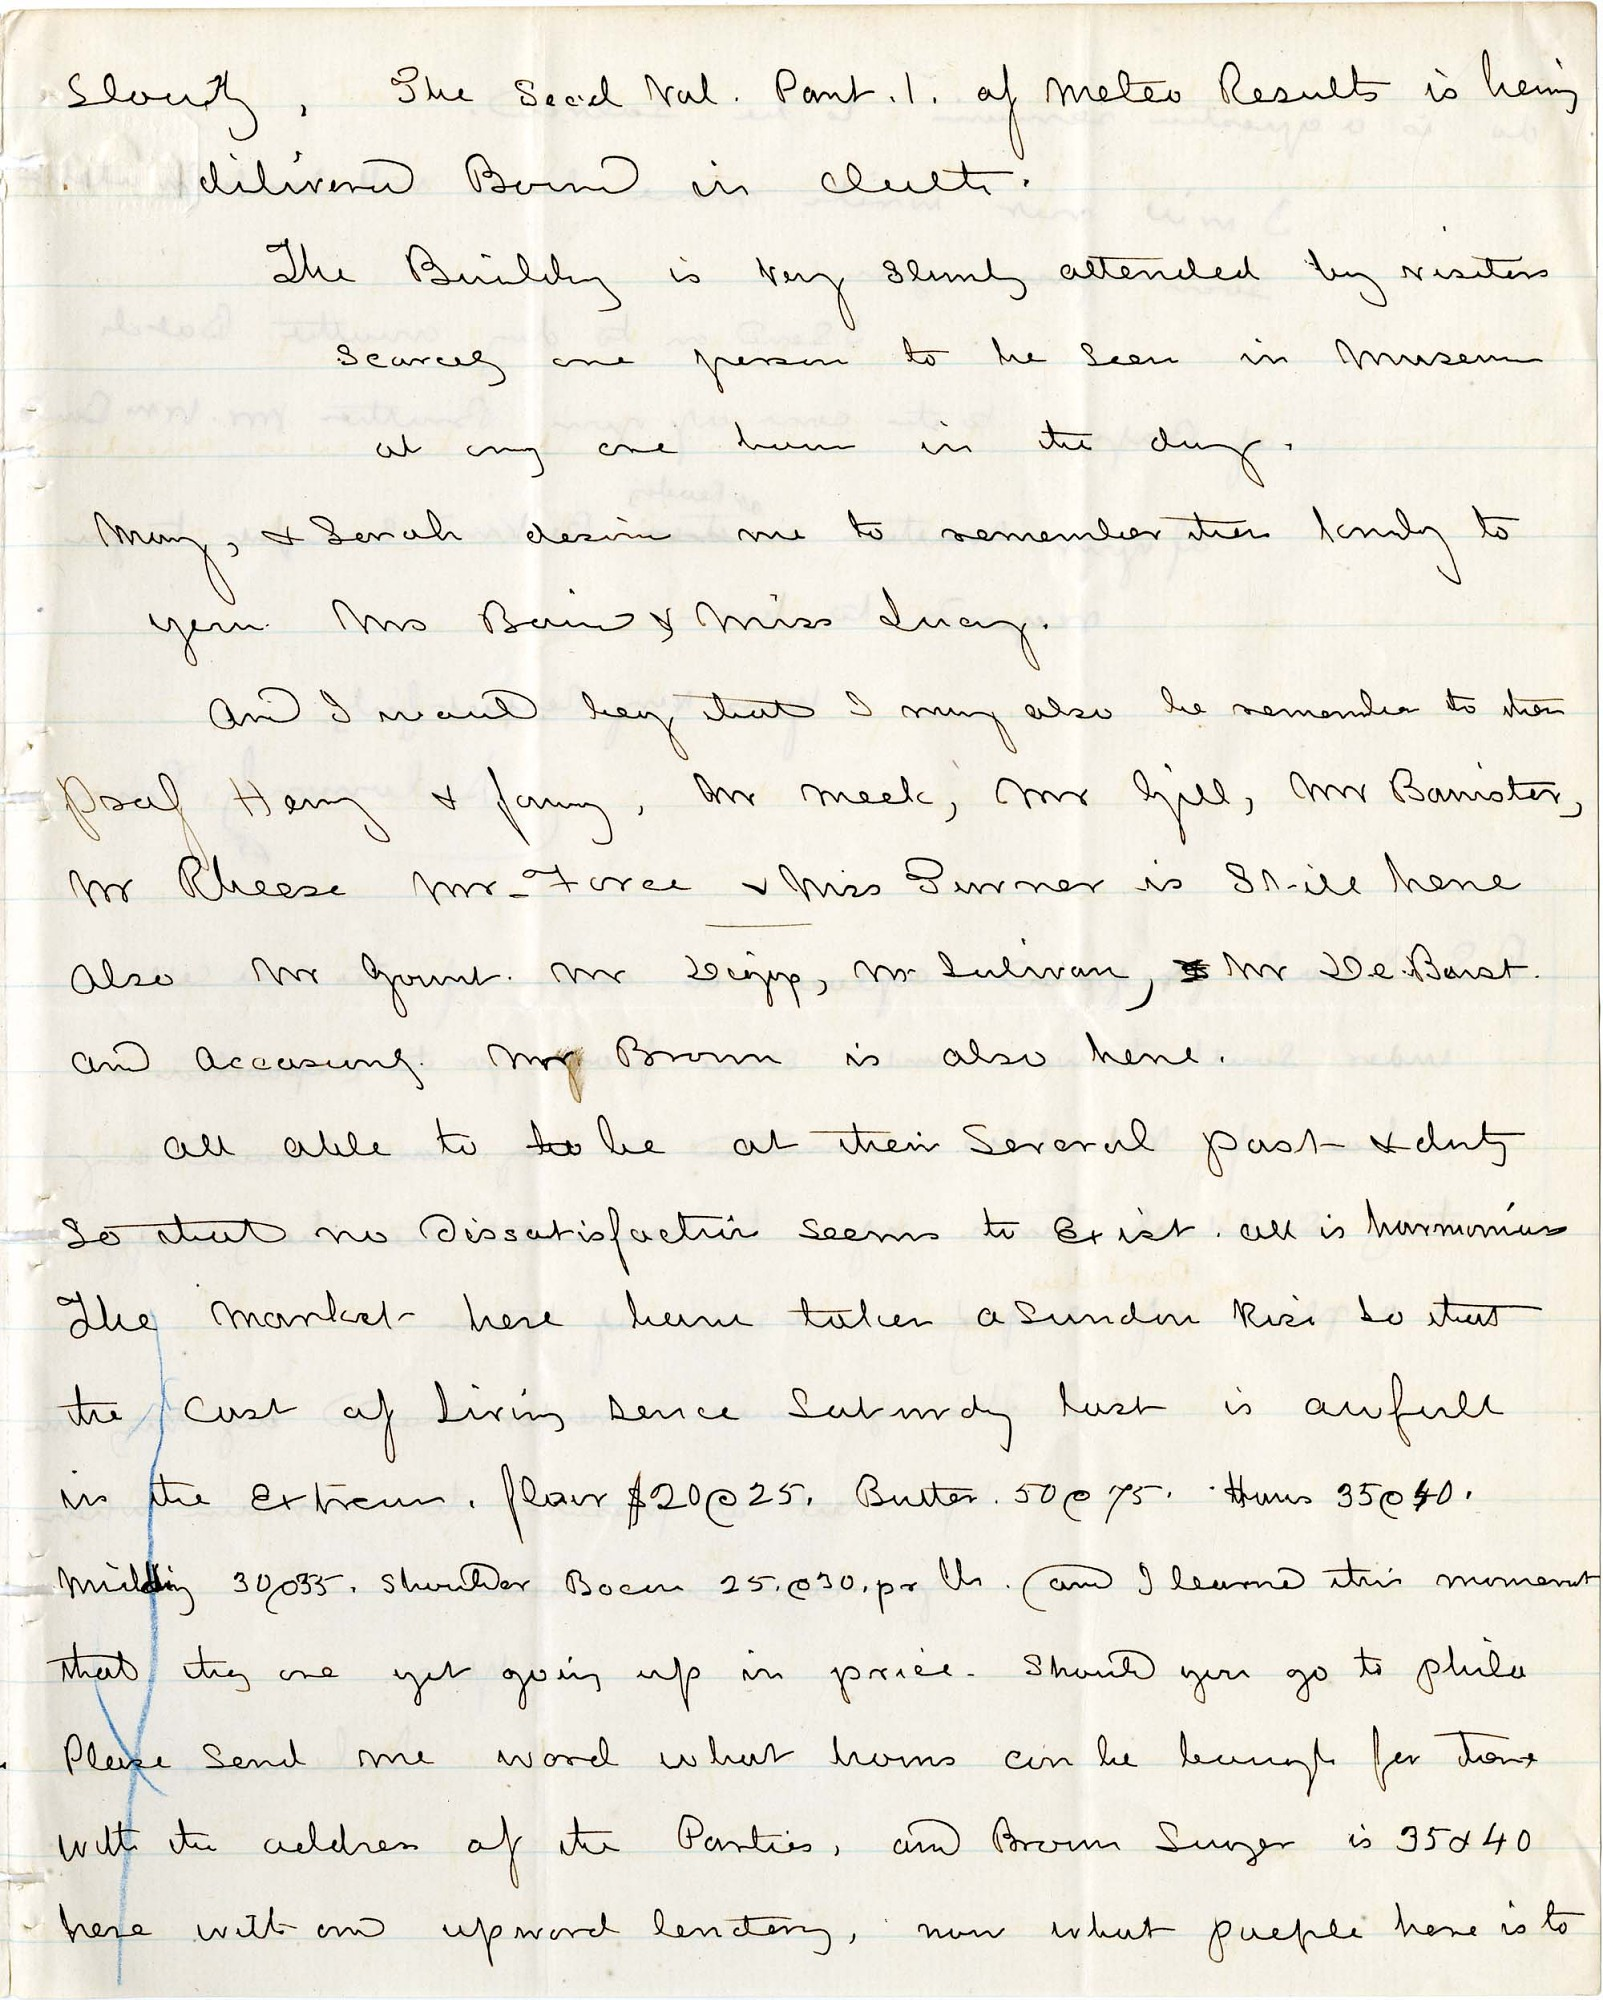 Solomon Brown Letter - July 15, 1864 - Page 3